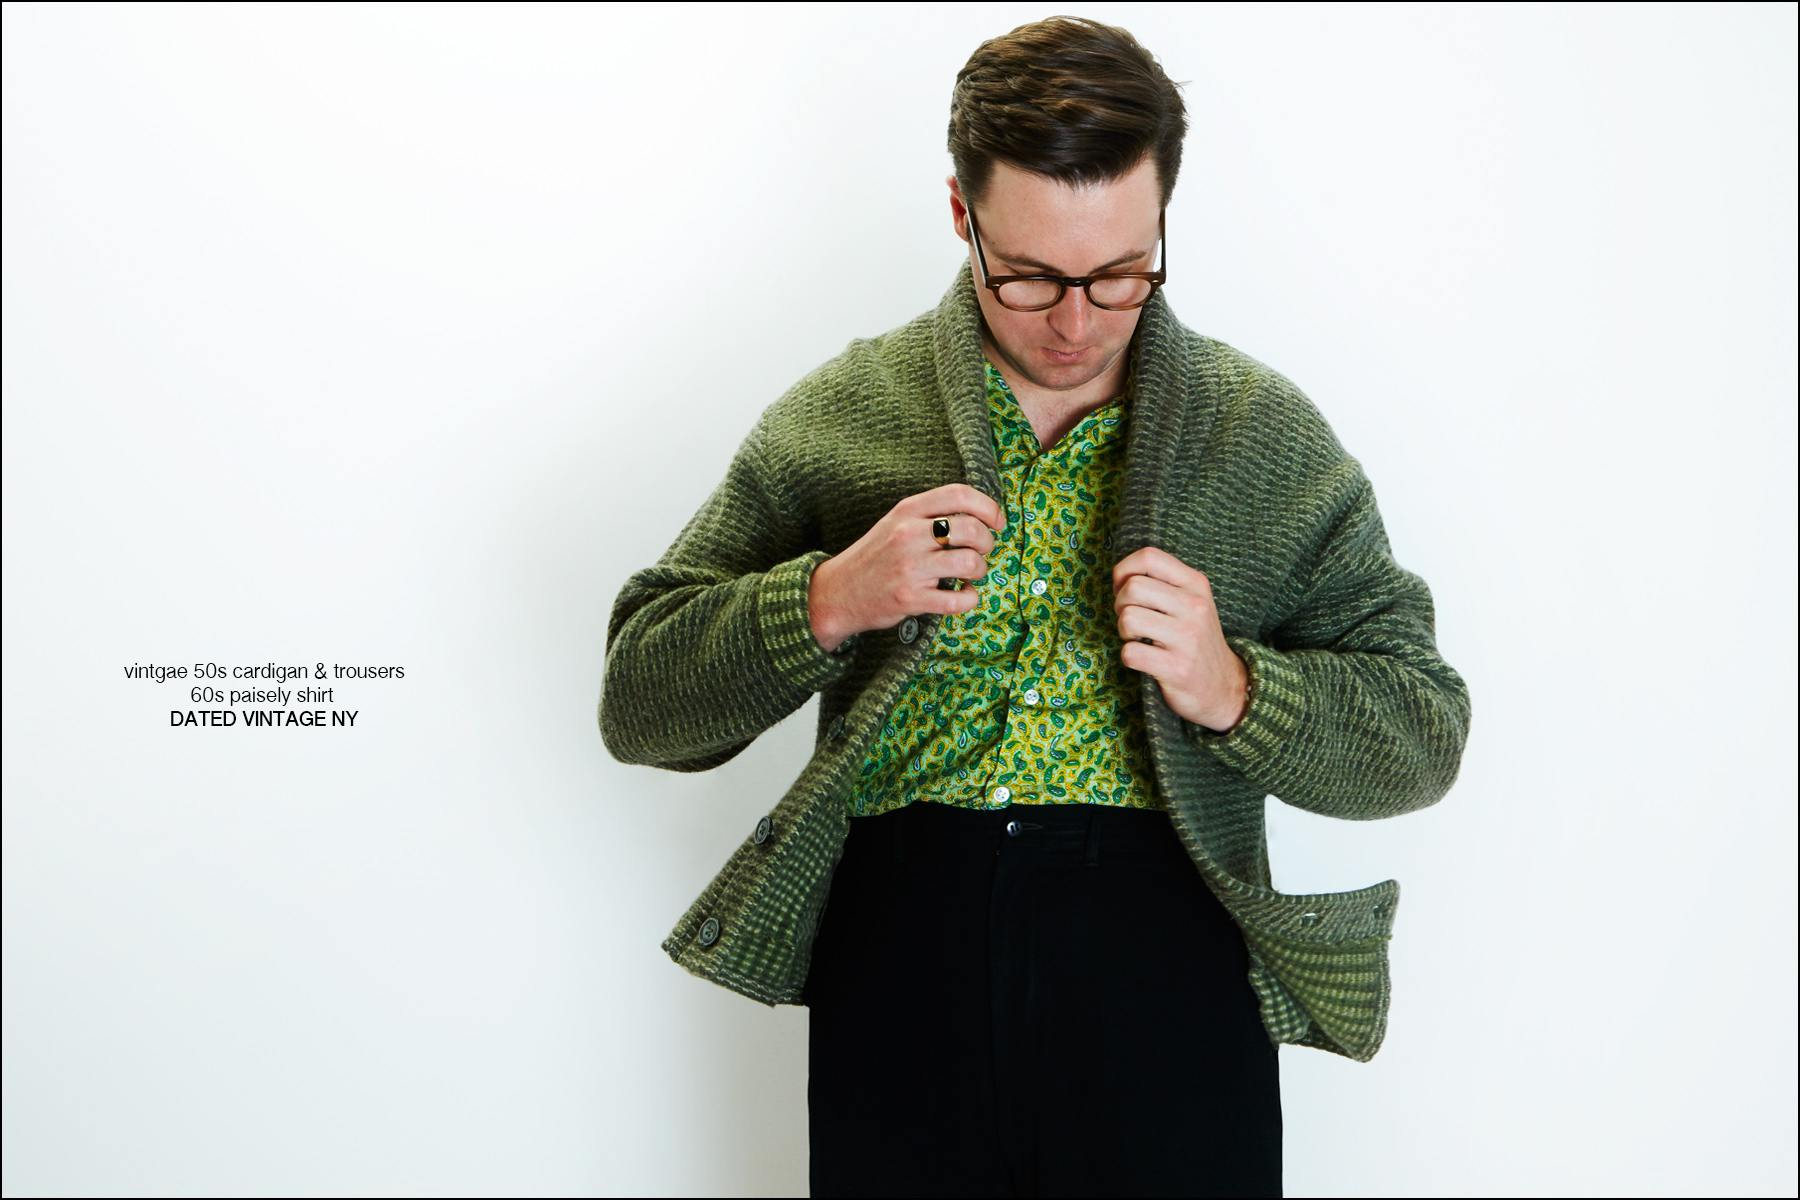 Musician Nick Waterhouse adjusts a vintage cardigan from Dated Vintage NY. Photographed by Alexander Thompson in New York City for Ponyboy magazine.